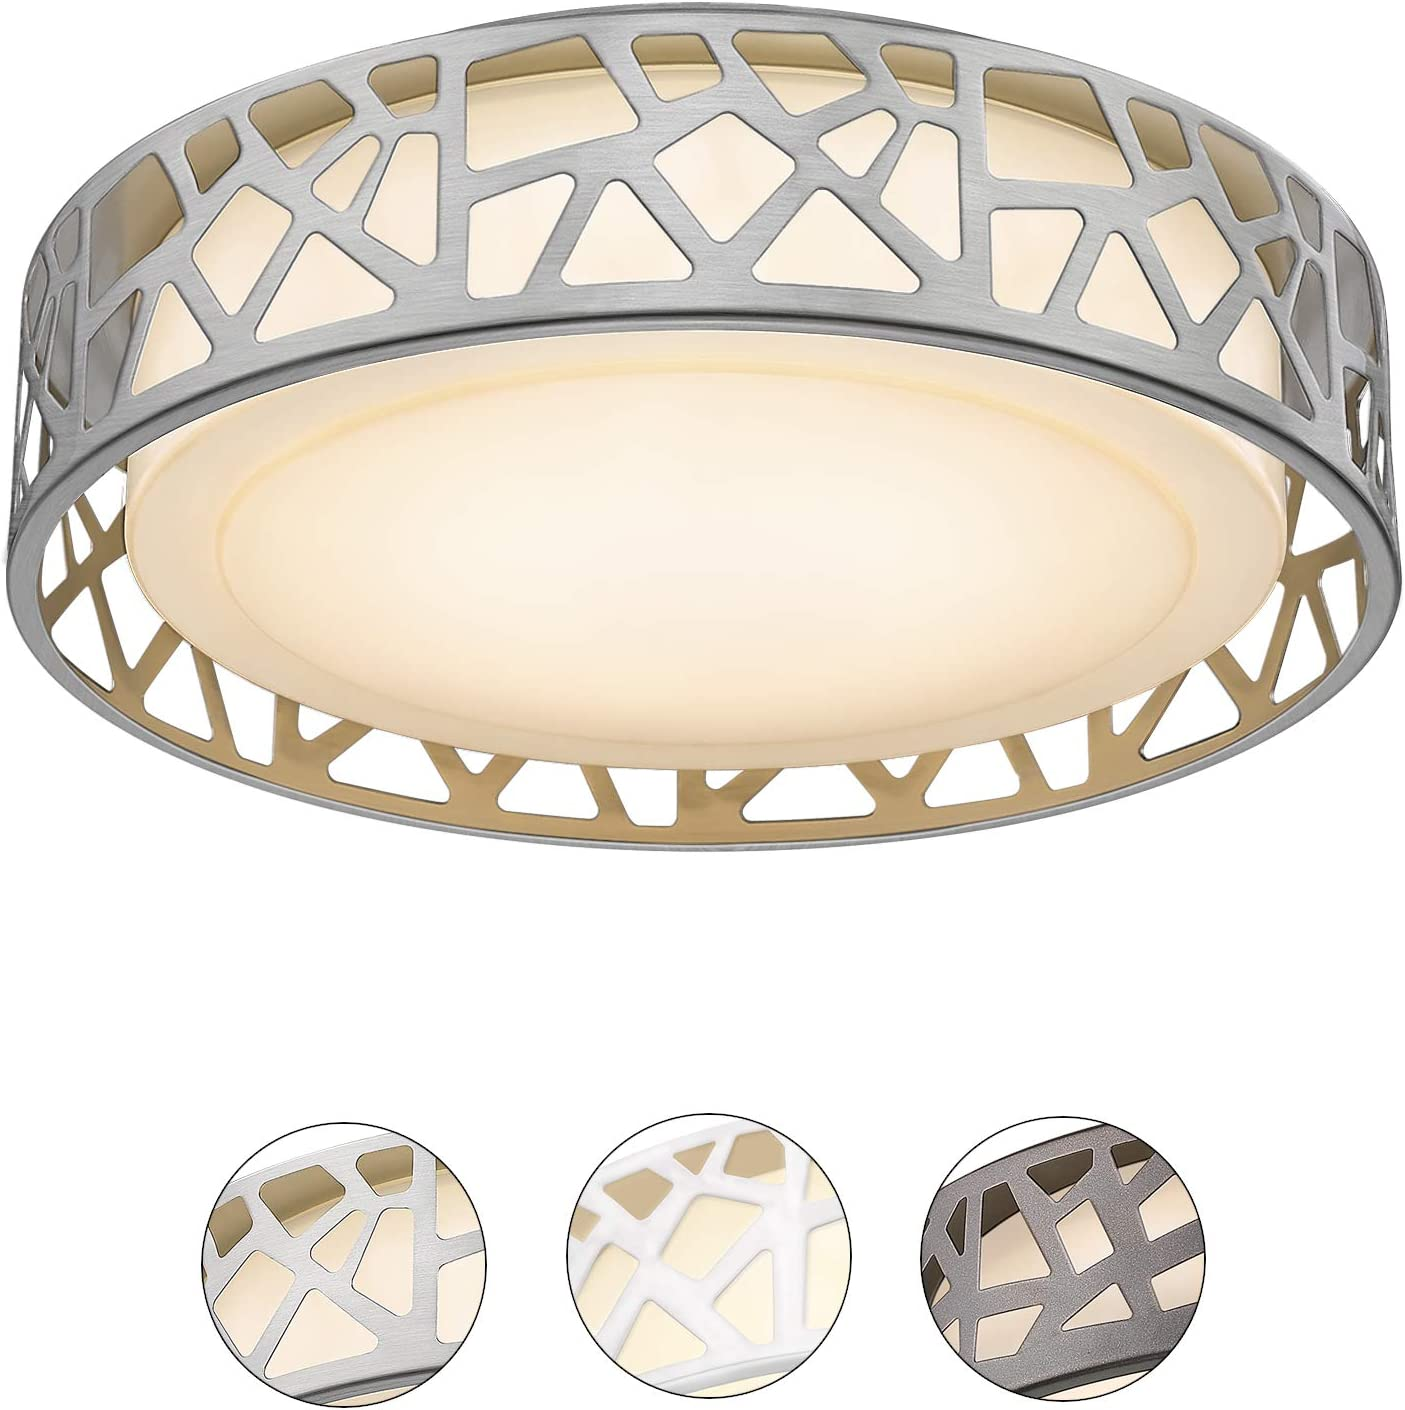 Ceiling Light Fixtures, VICNIE 14 inch 20W 1400 Lumens LED Flush Mount, Dimmable 3000K Warm White, Brush Nickel Finished, ETL Listed for Kitchen, Hallway, Bedroom, Stairways